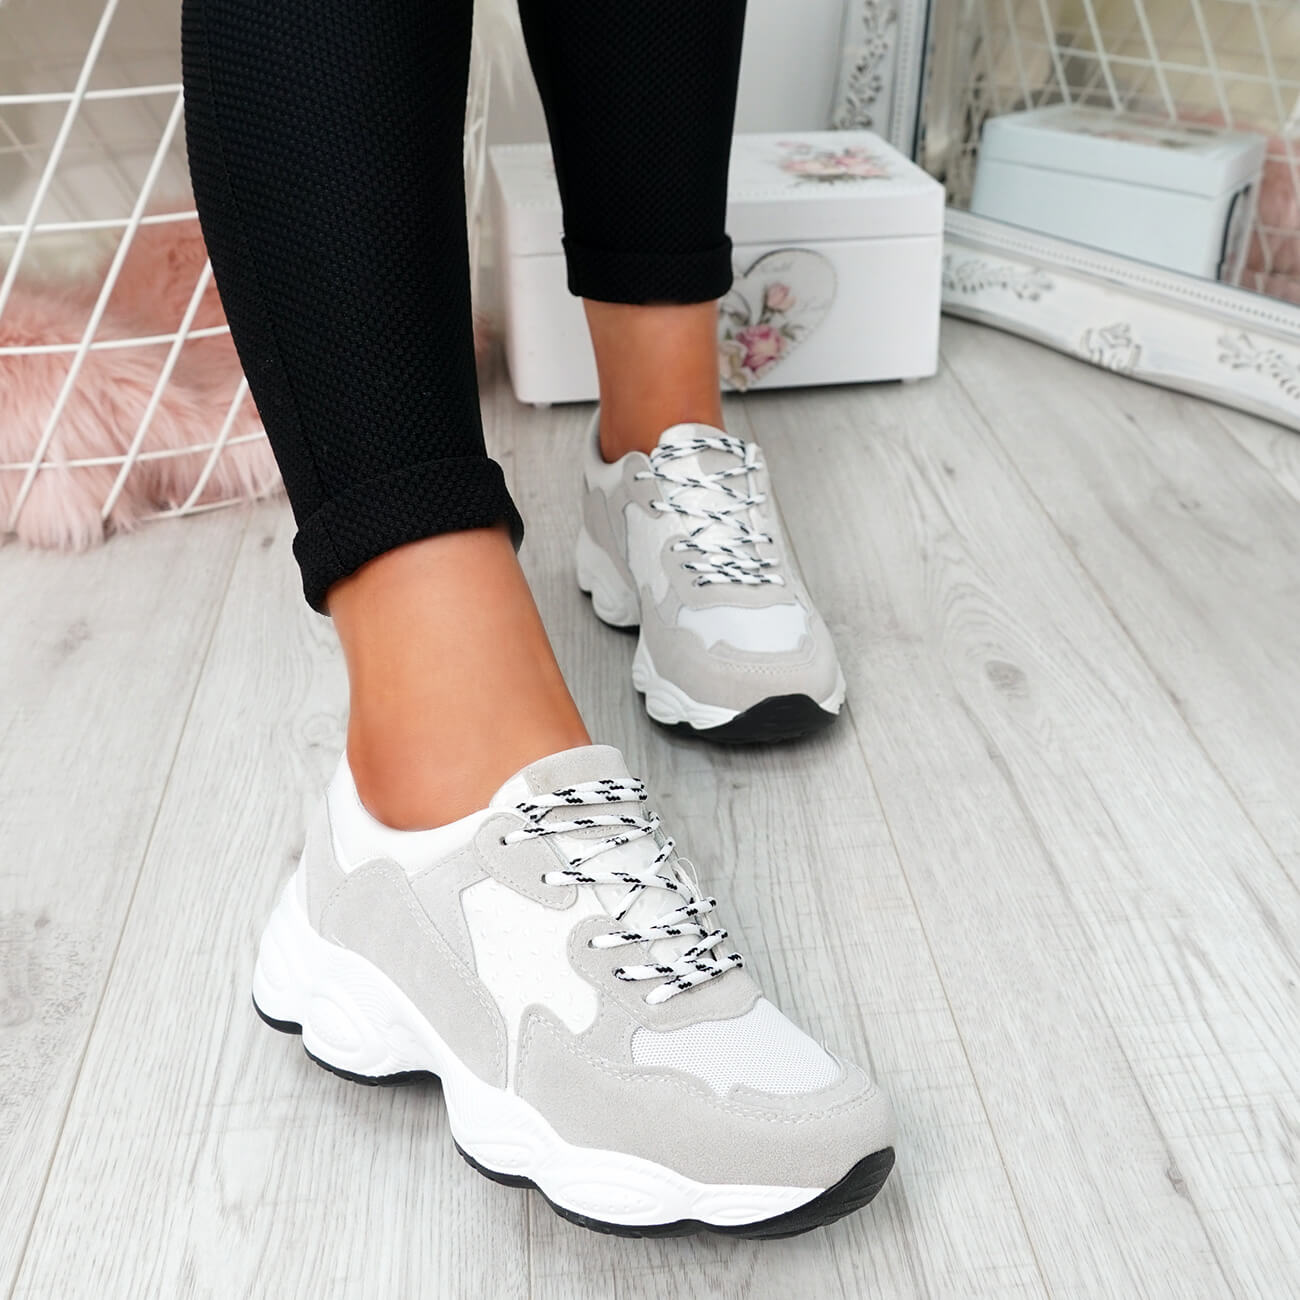 WOMENS-LADIES-RUNNING-GYM-CHUNKY-TRAINERS-SNEAKERS-SHOES-SIZE miniatura 6